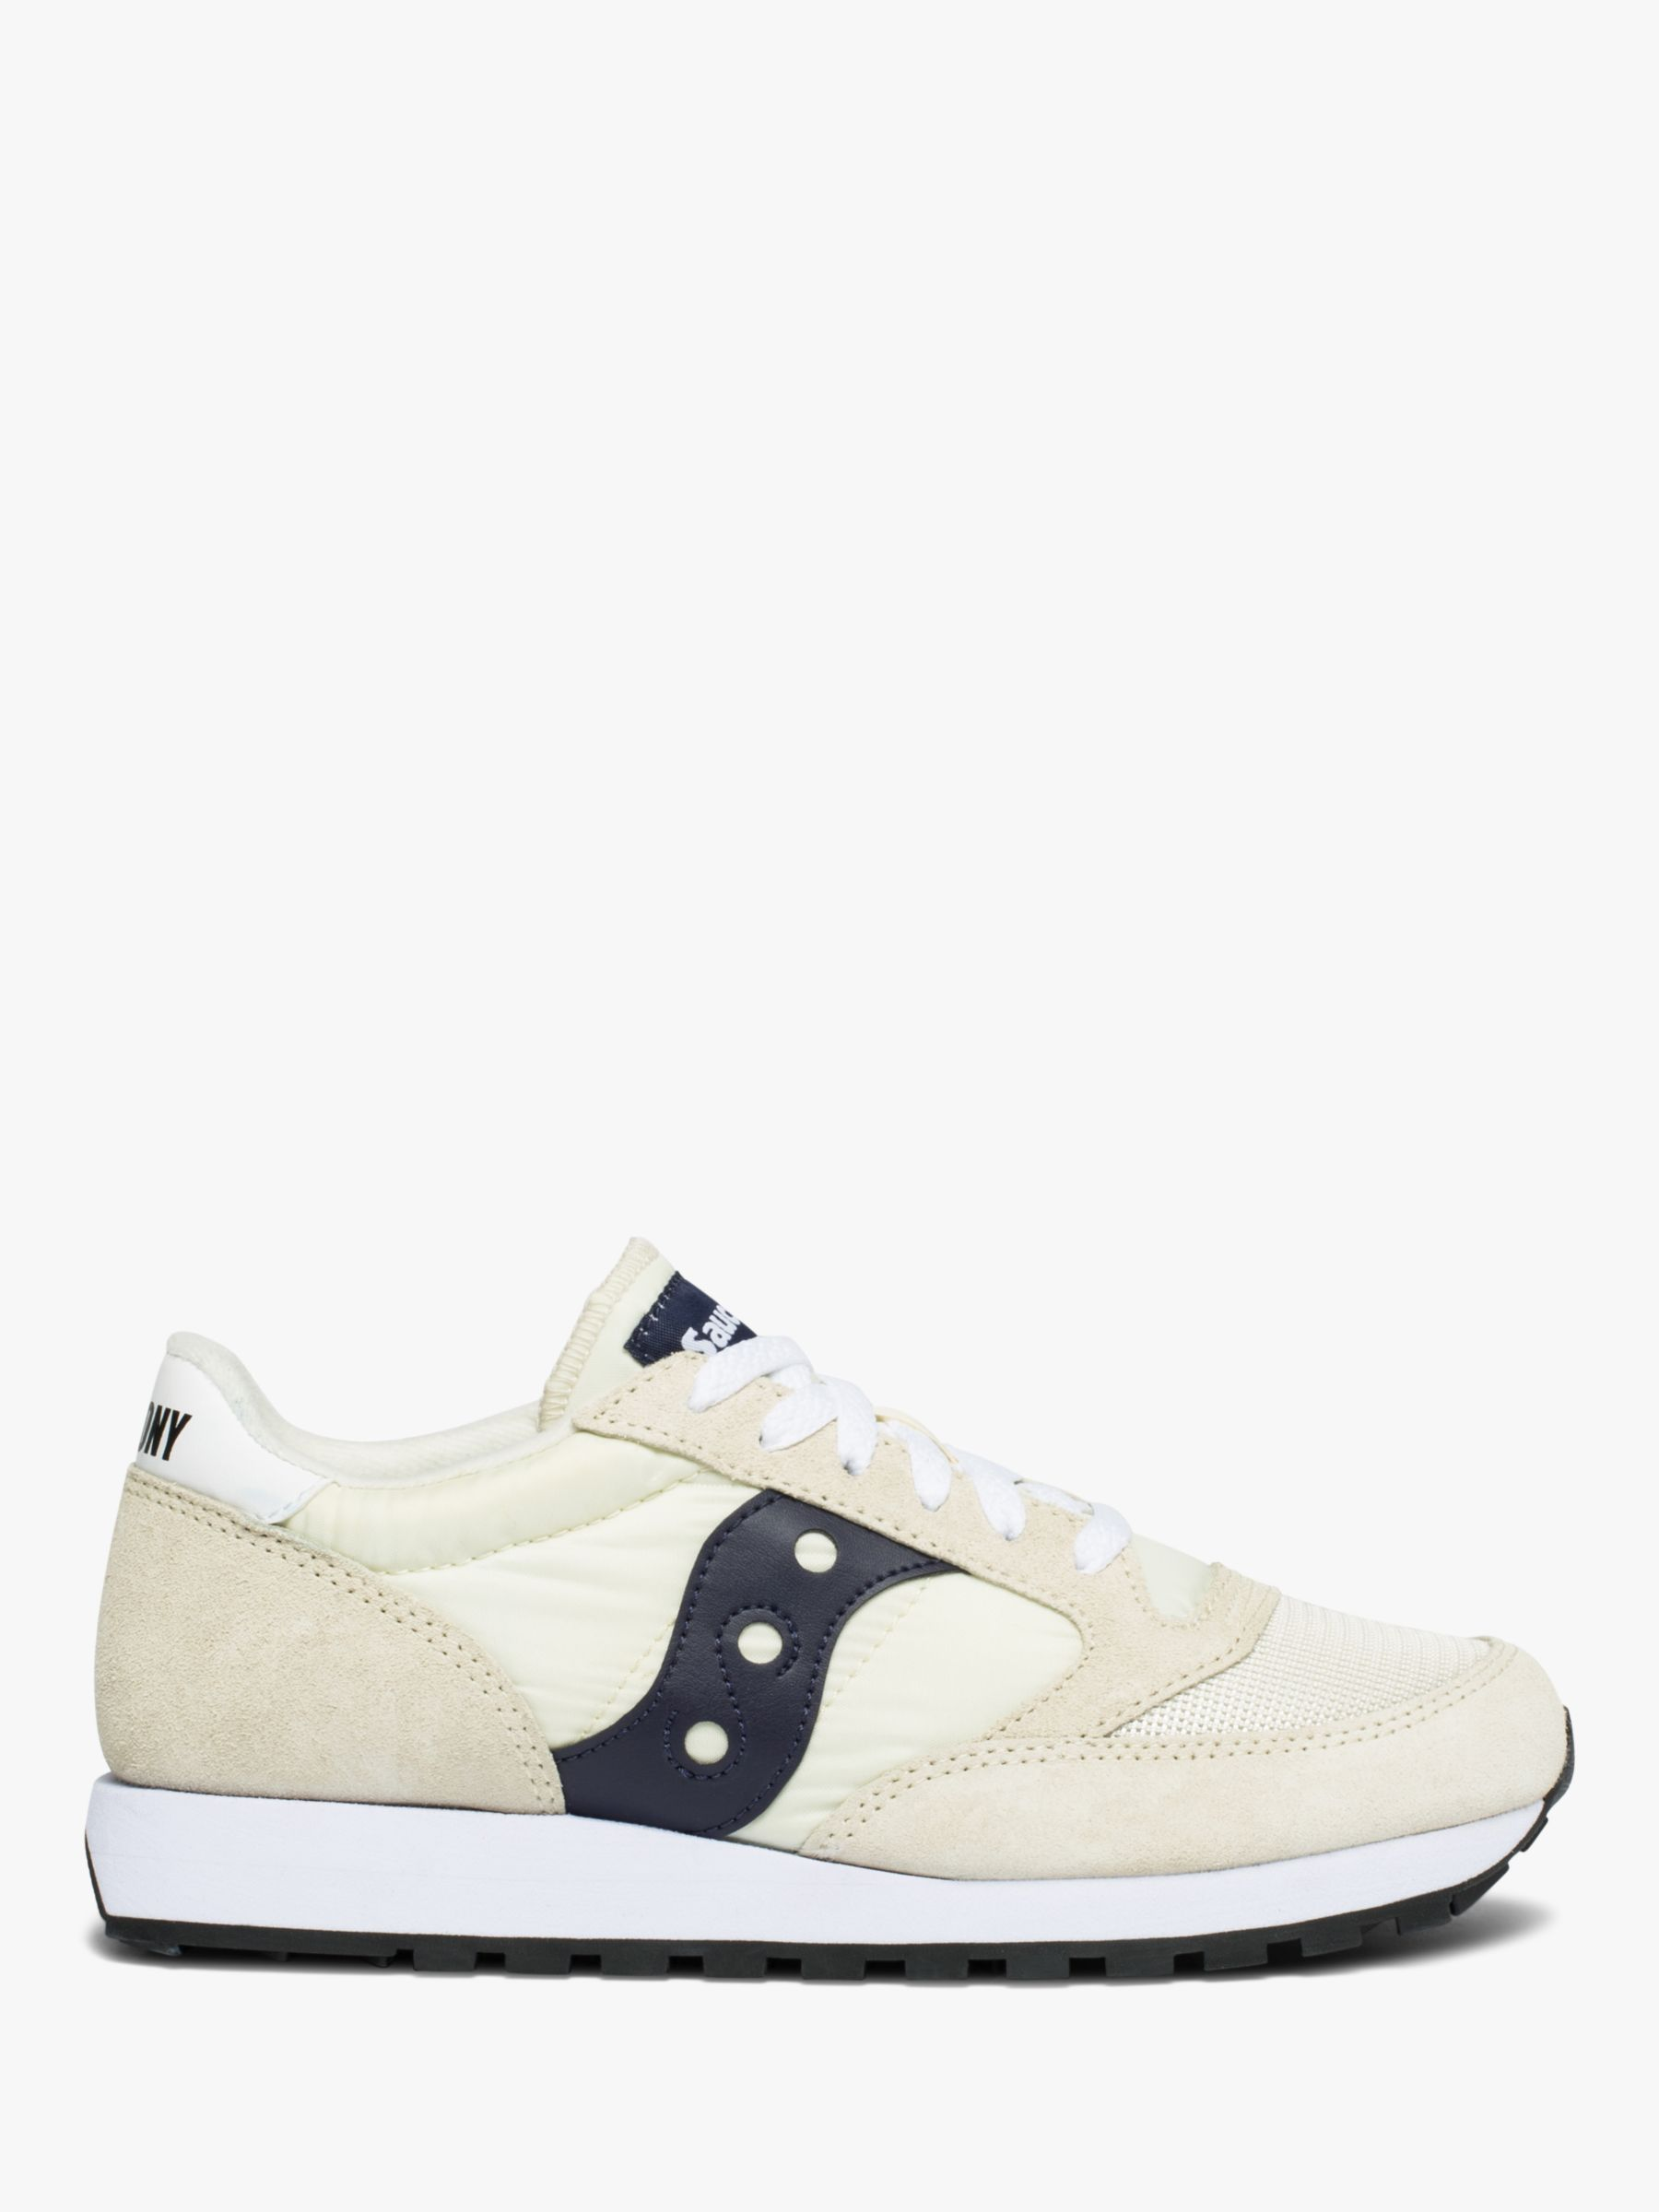 Buy Saucony Jazz Original Vintage Men's Trainers, Tan/Navy, 7 Online at johnlewis.com